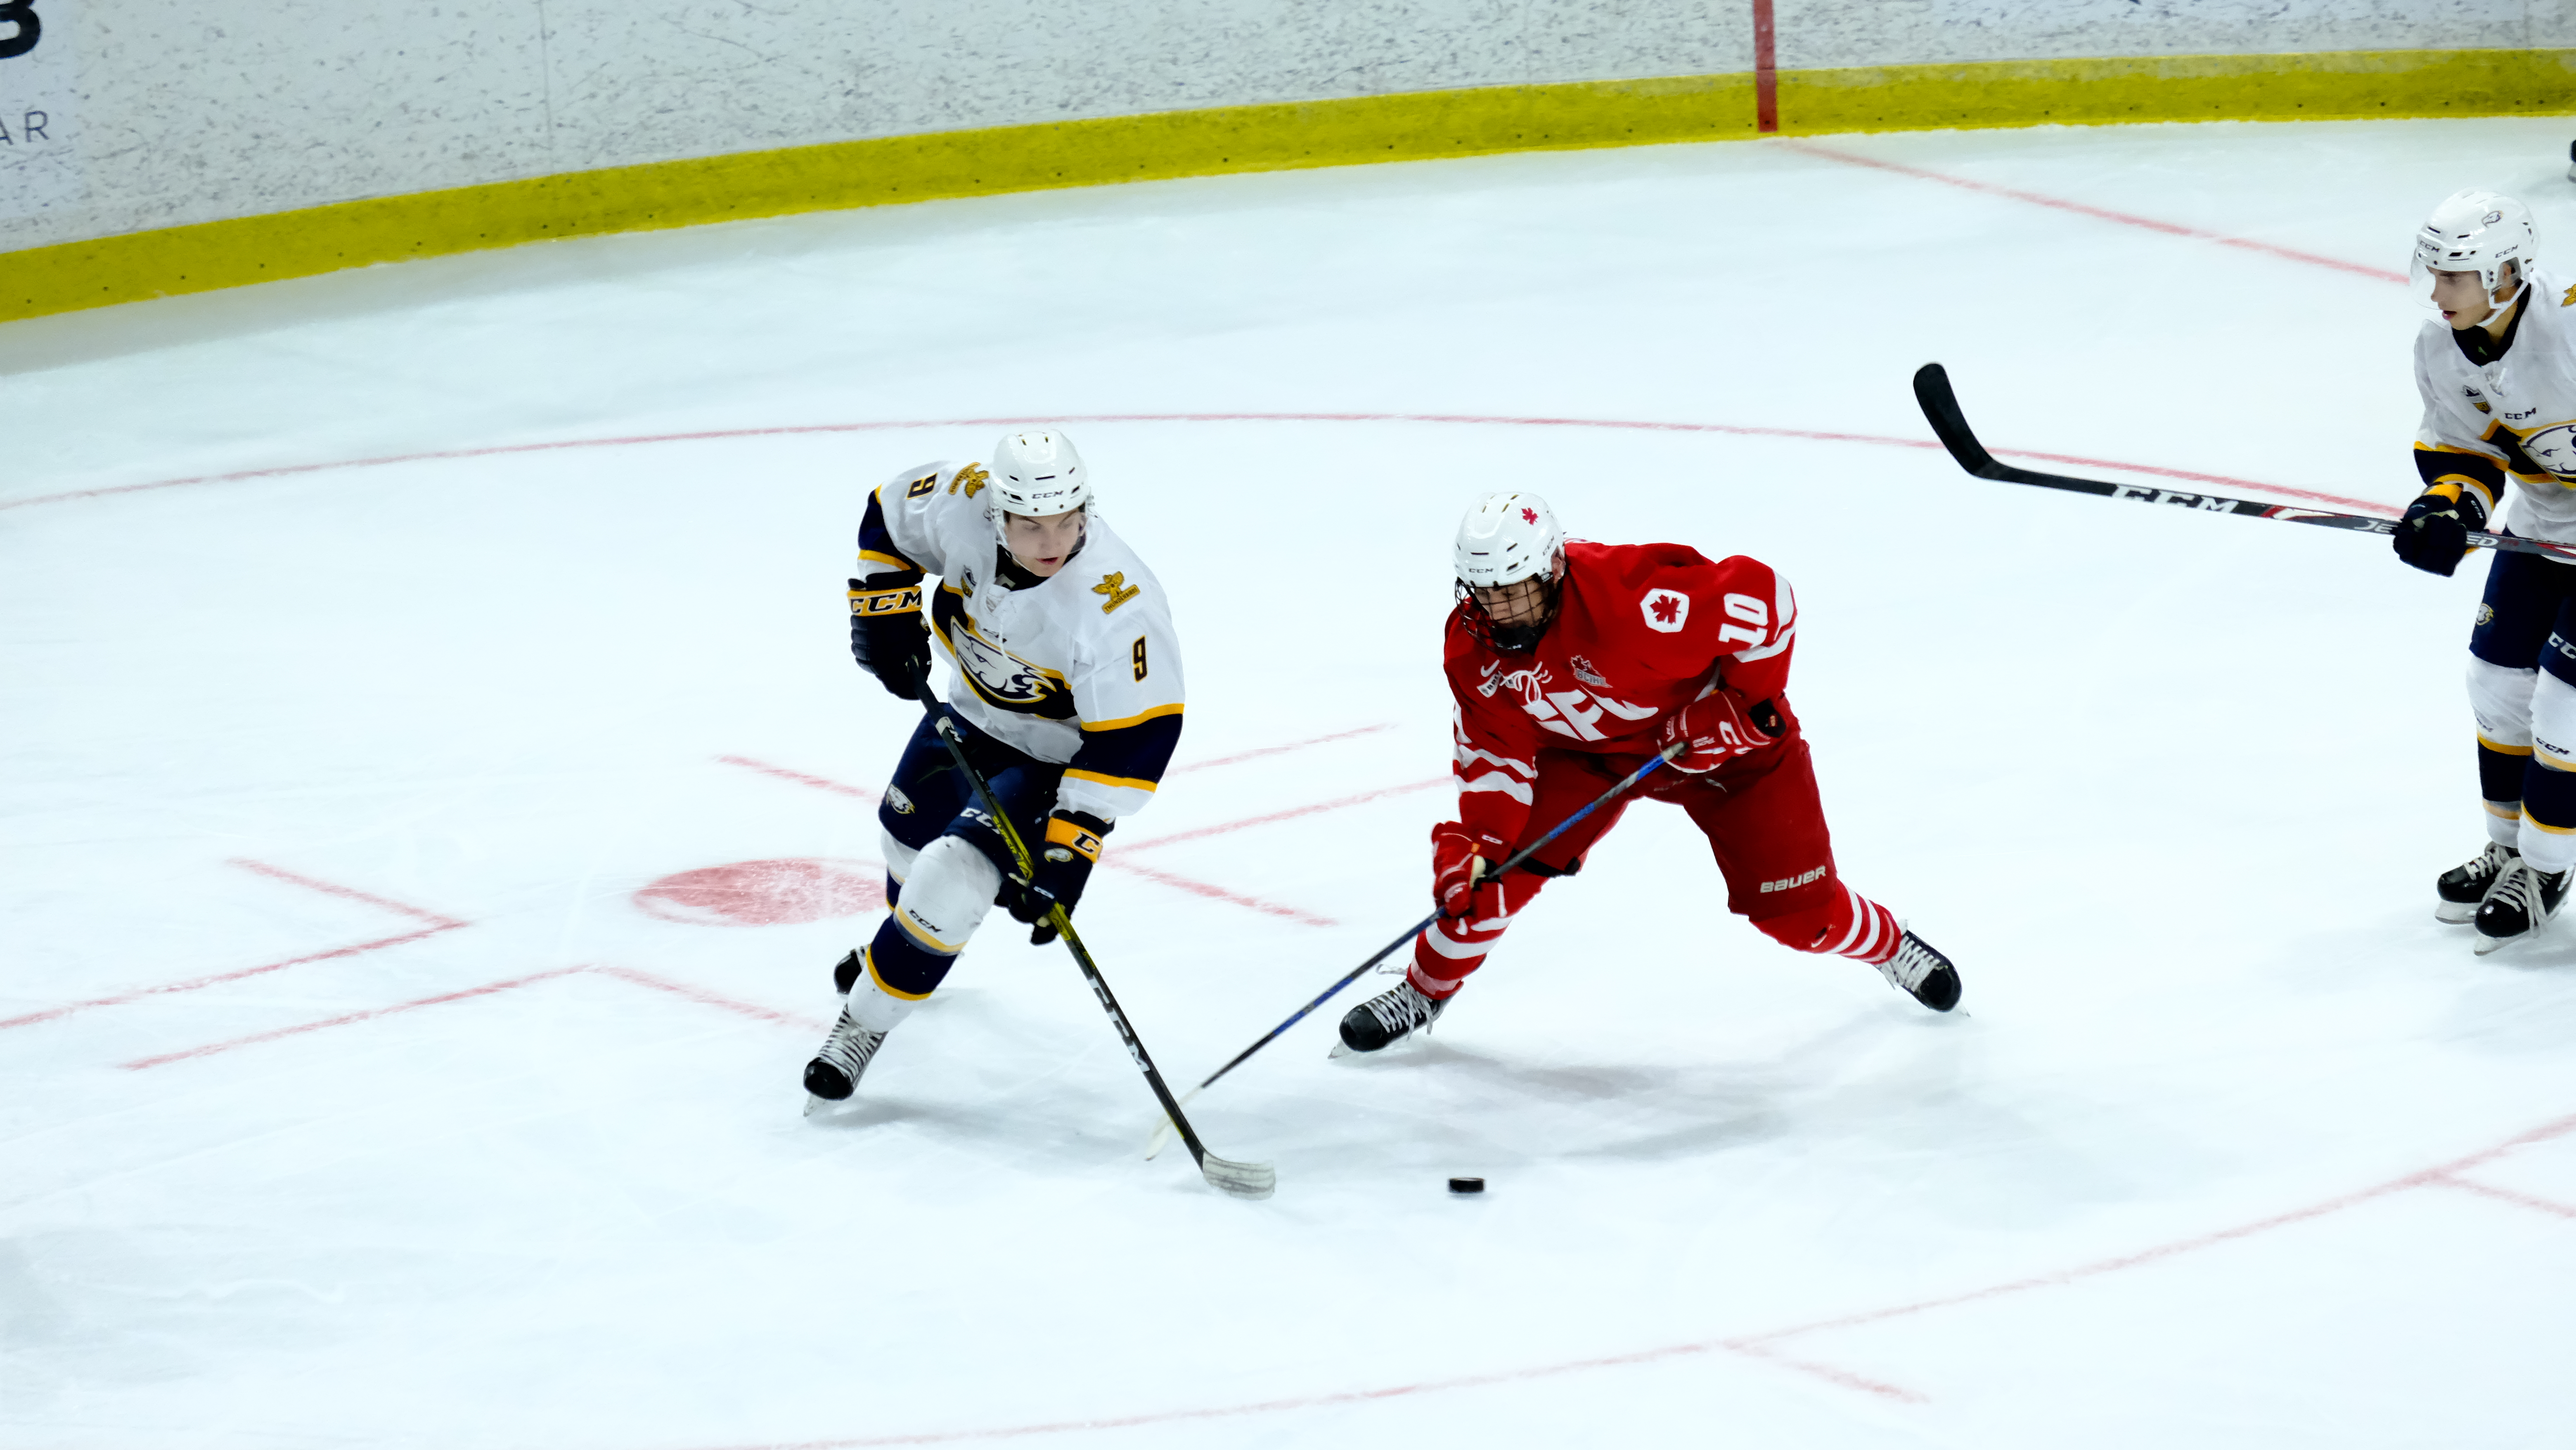 SFU drops first game of the Captains Cup Round Robin to UBC